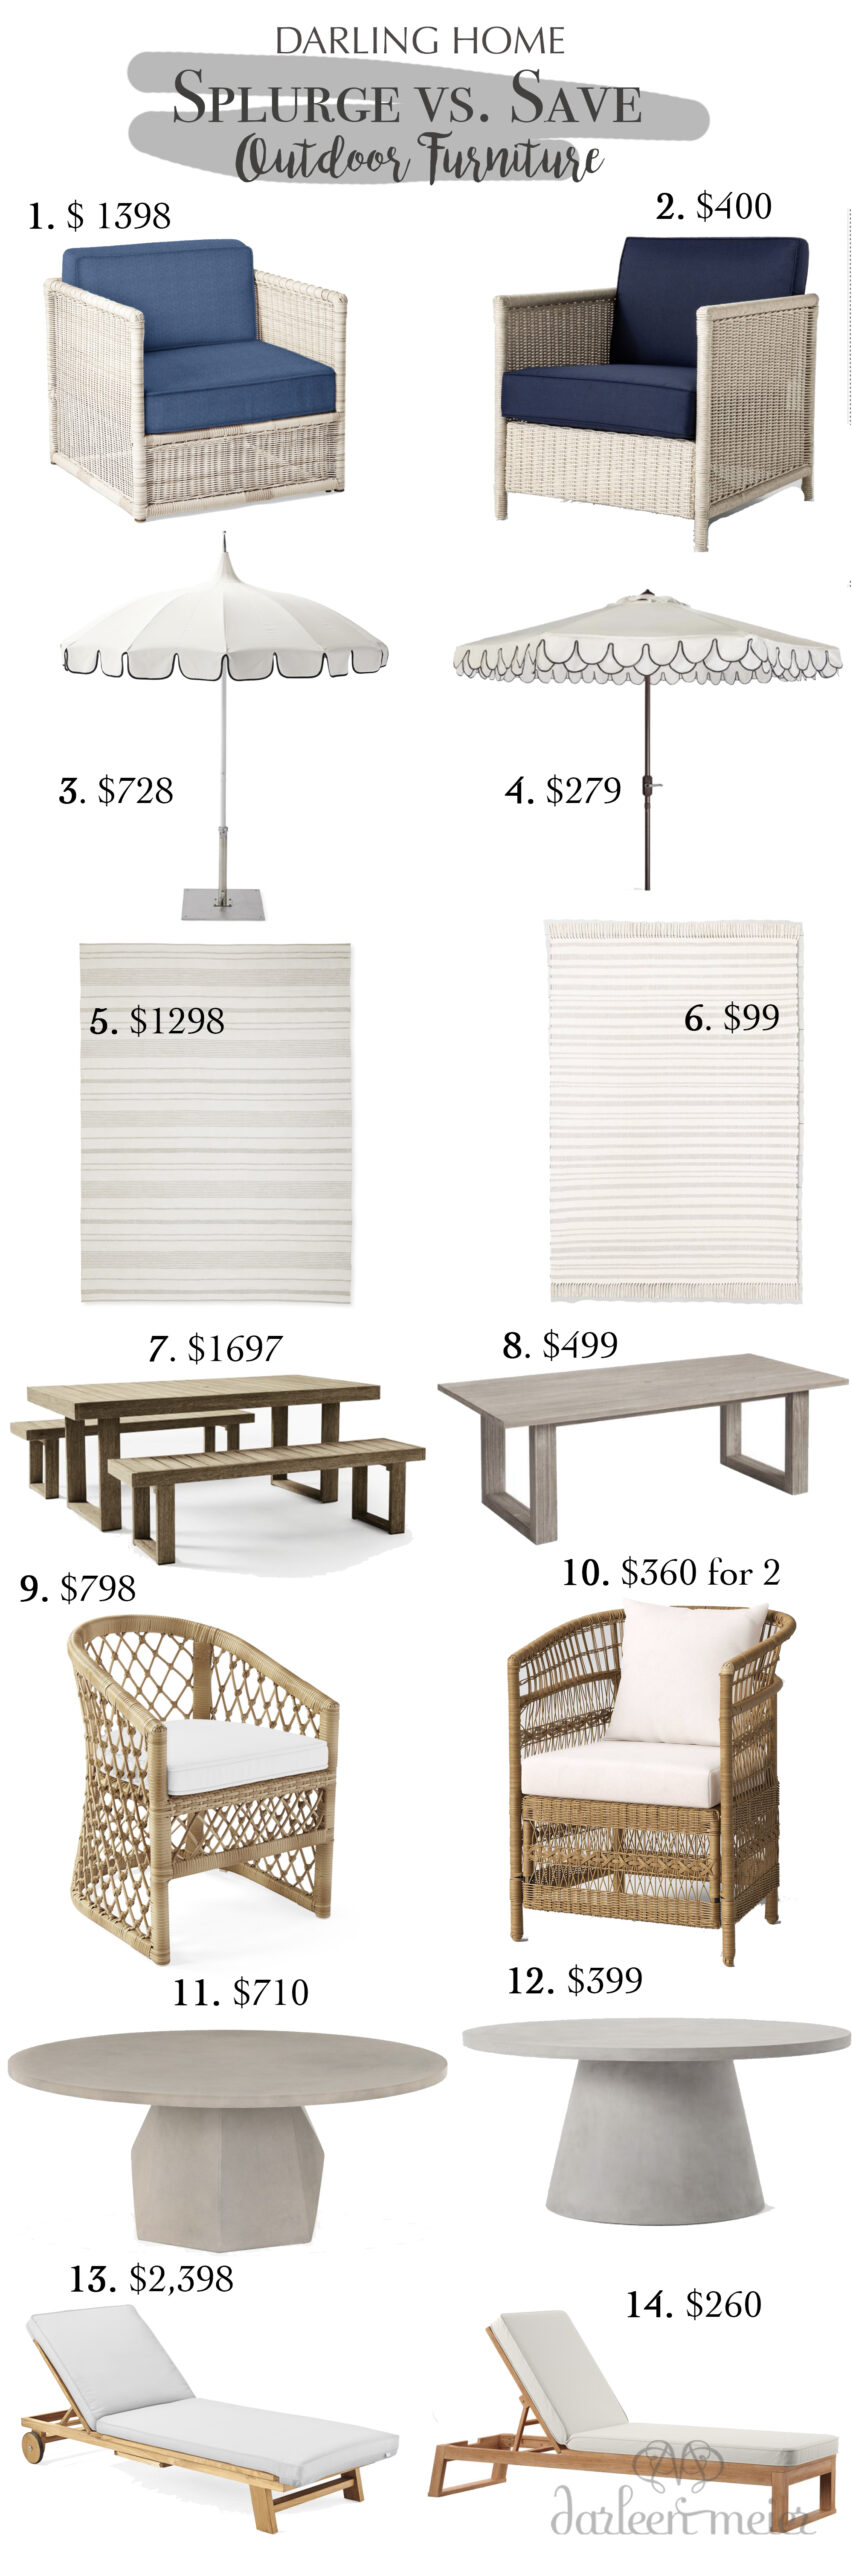 Another splurge vs. save outdoor furniture edition post. Update your outdoor living space with one of these cozy outdoor furniture pieces    Darling Darleen Top Lifestyle Blogger